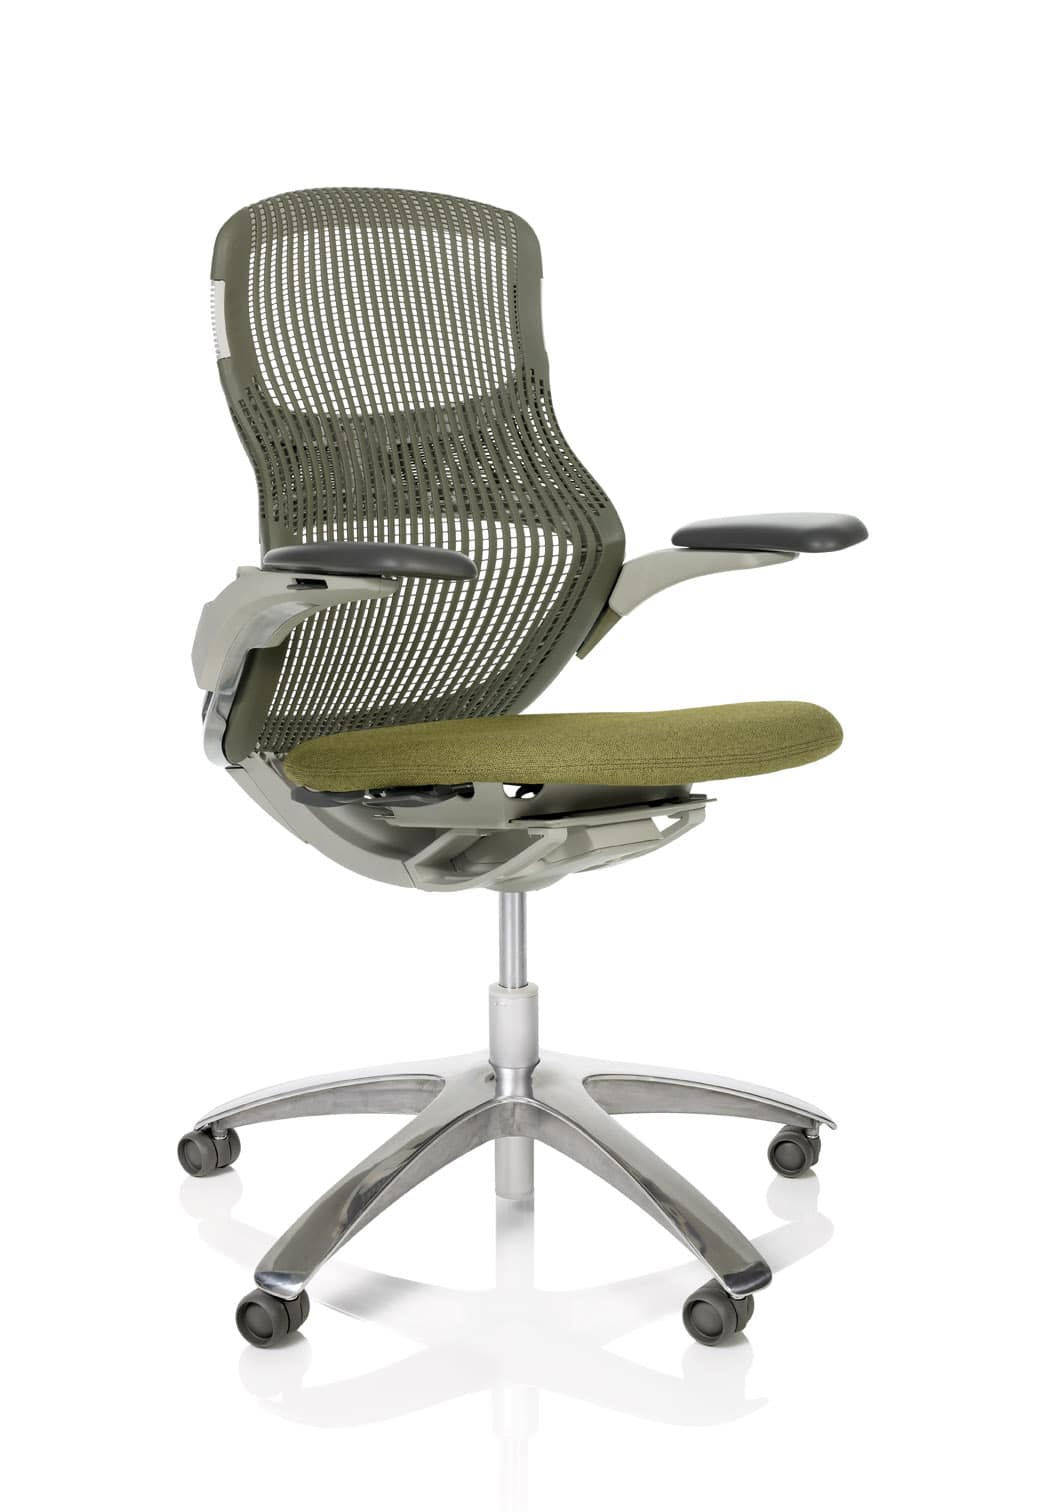 best the chairs cool for man cave finding ergonomic office chair  systems furniture